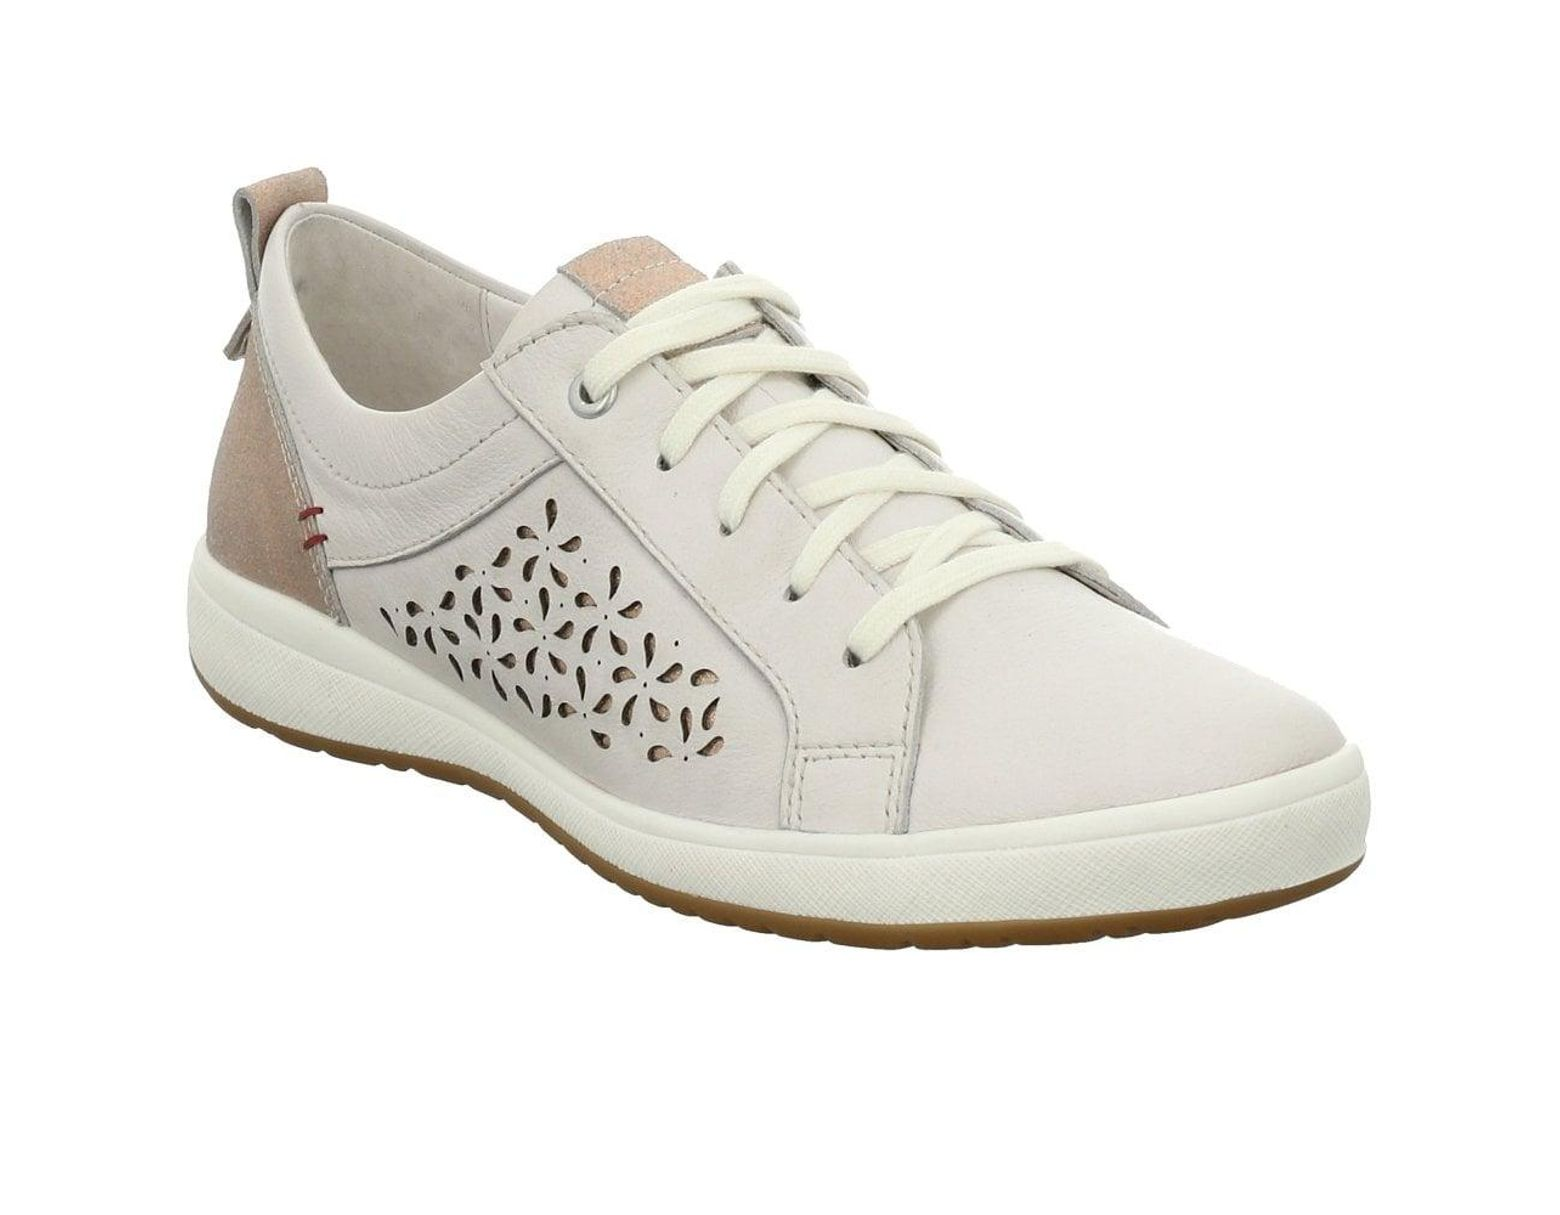 1499ee30 Josef Seibel White Leather 'caren 06' Casual Trainers in White - Lyst